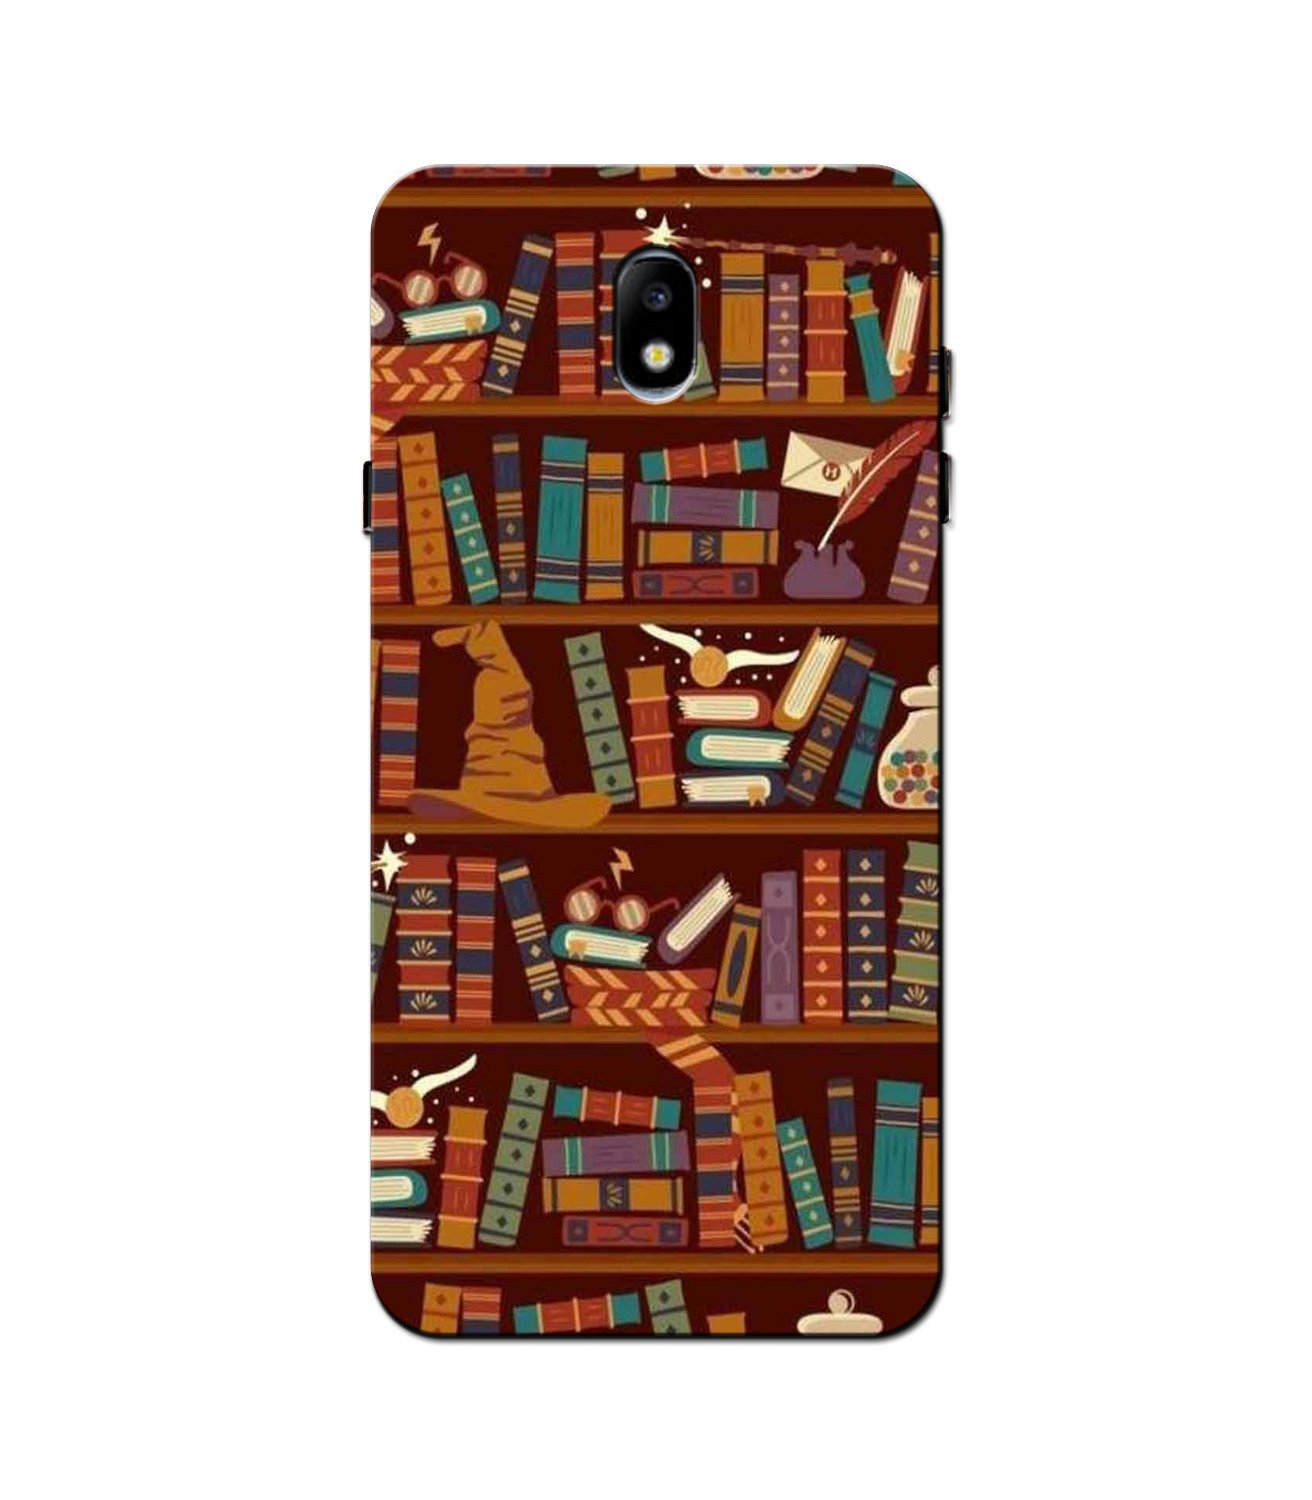 Book Shelf Mobile Back Case for Galaxy J5 Pro  (Design - 390)